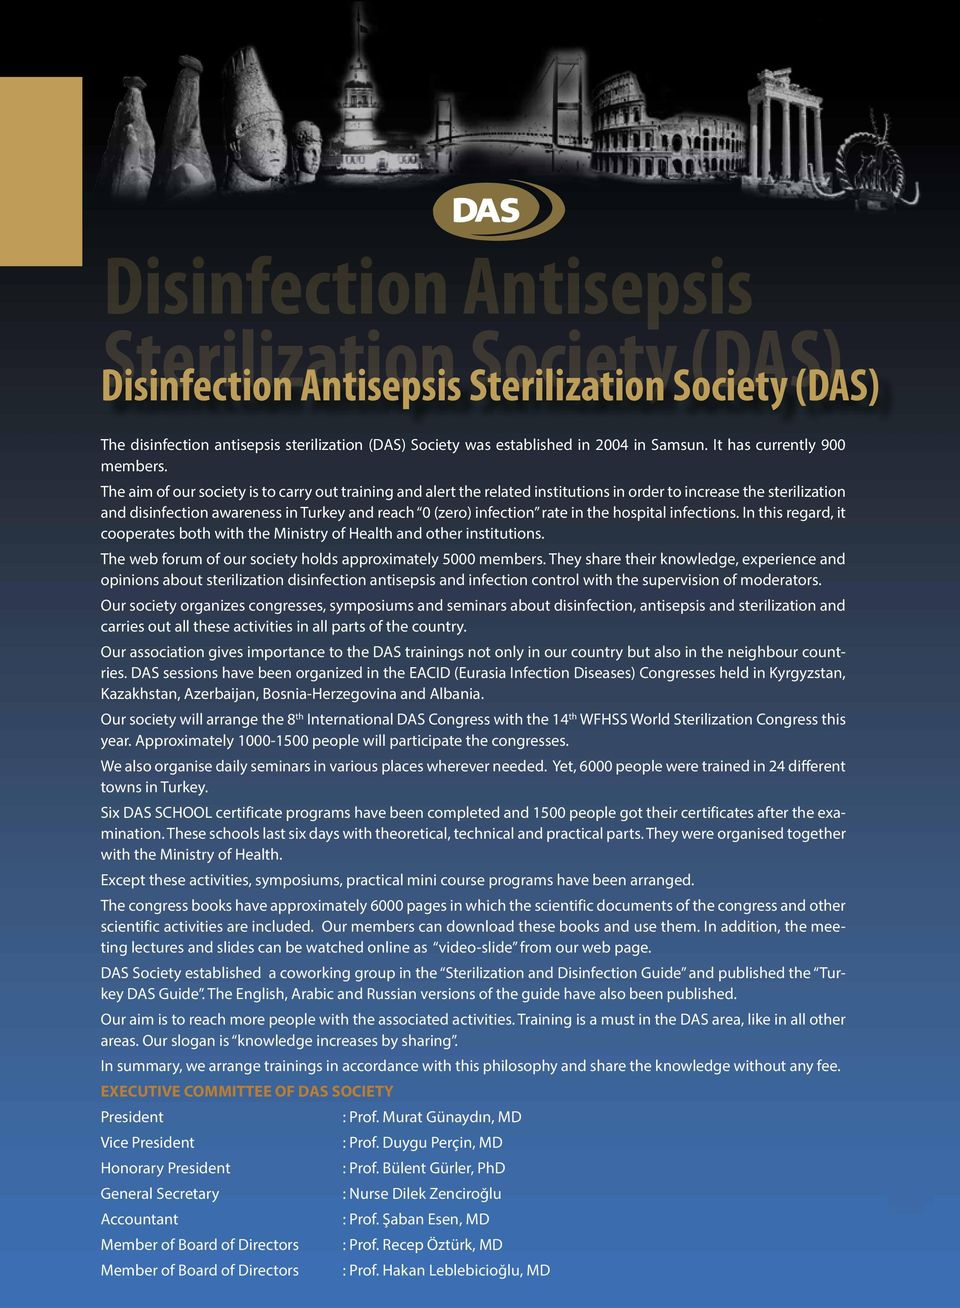 The aim of our society is to carry out training and alert the related institutions in order to increase the sterilization and disinfection awareness in Turkey and reach 0 (zero) infection rate in the